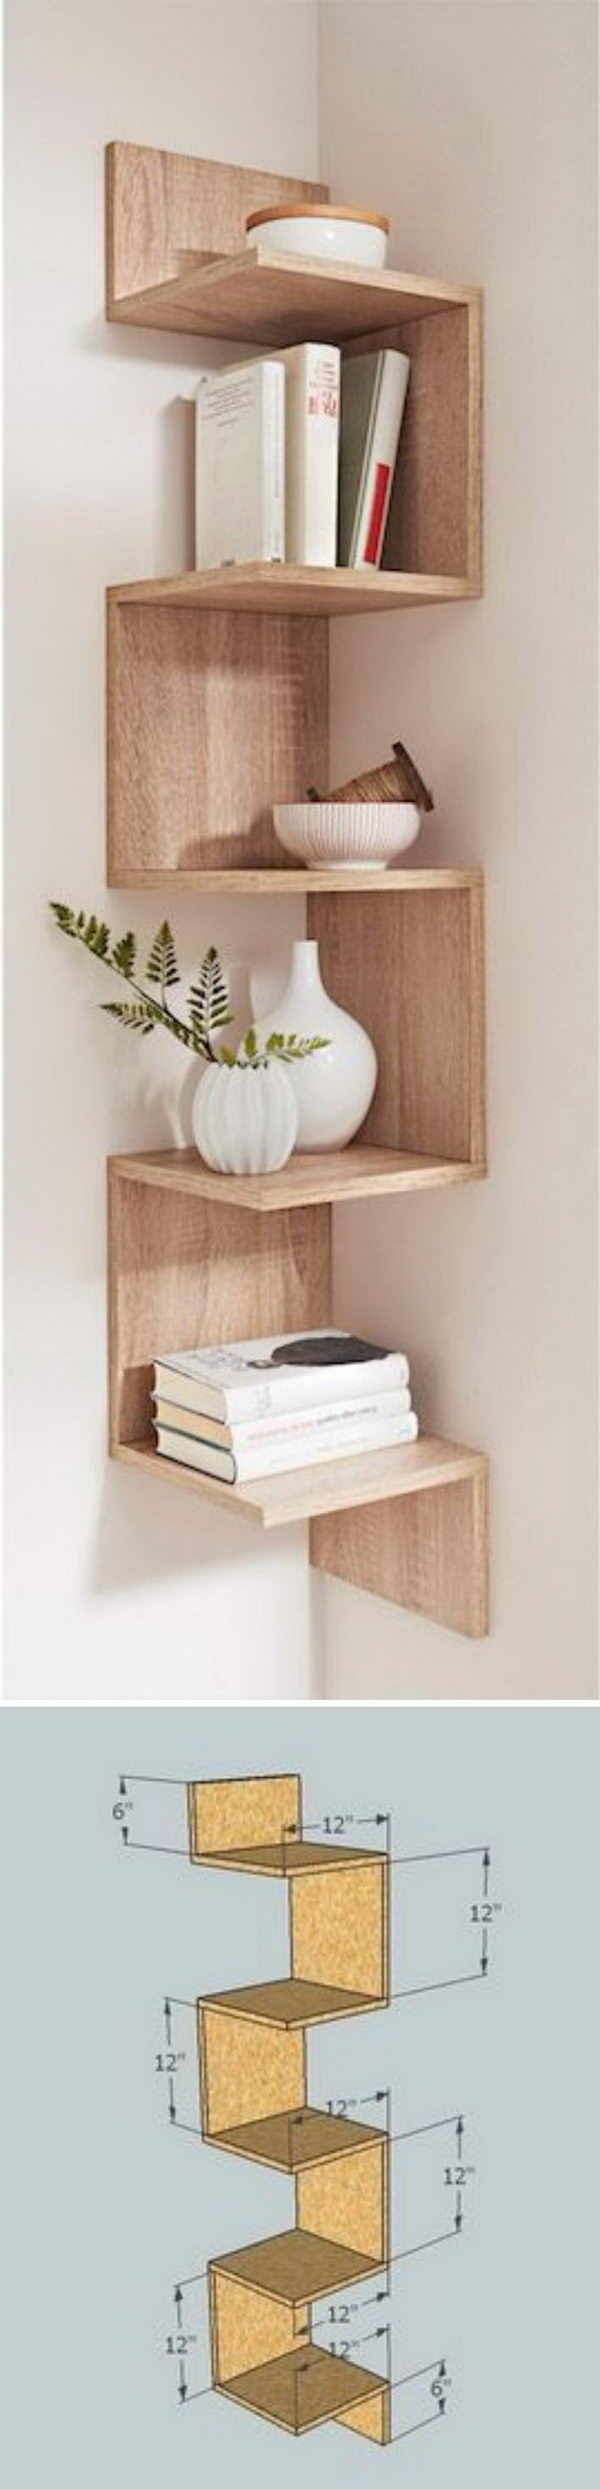 20 diy corner shelves to beautify your awkward corner 2017 Corner shelf ideas